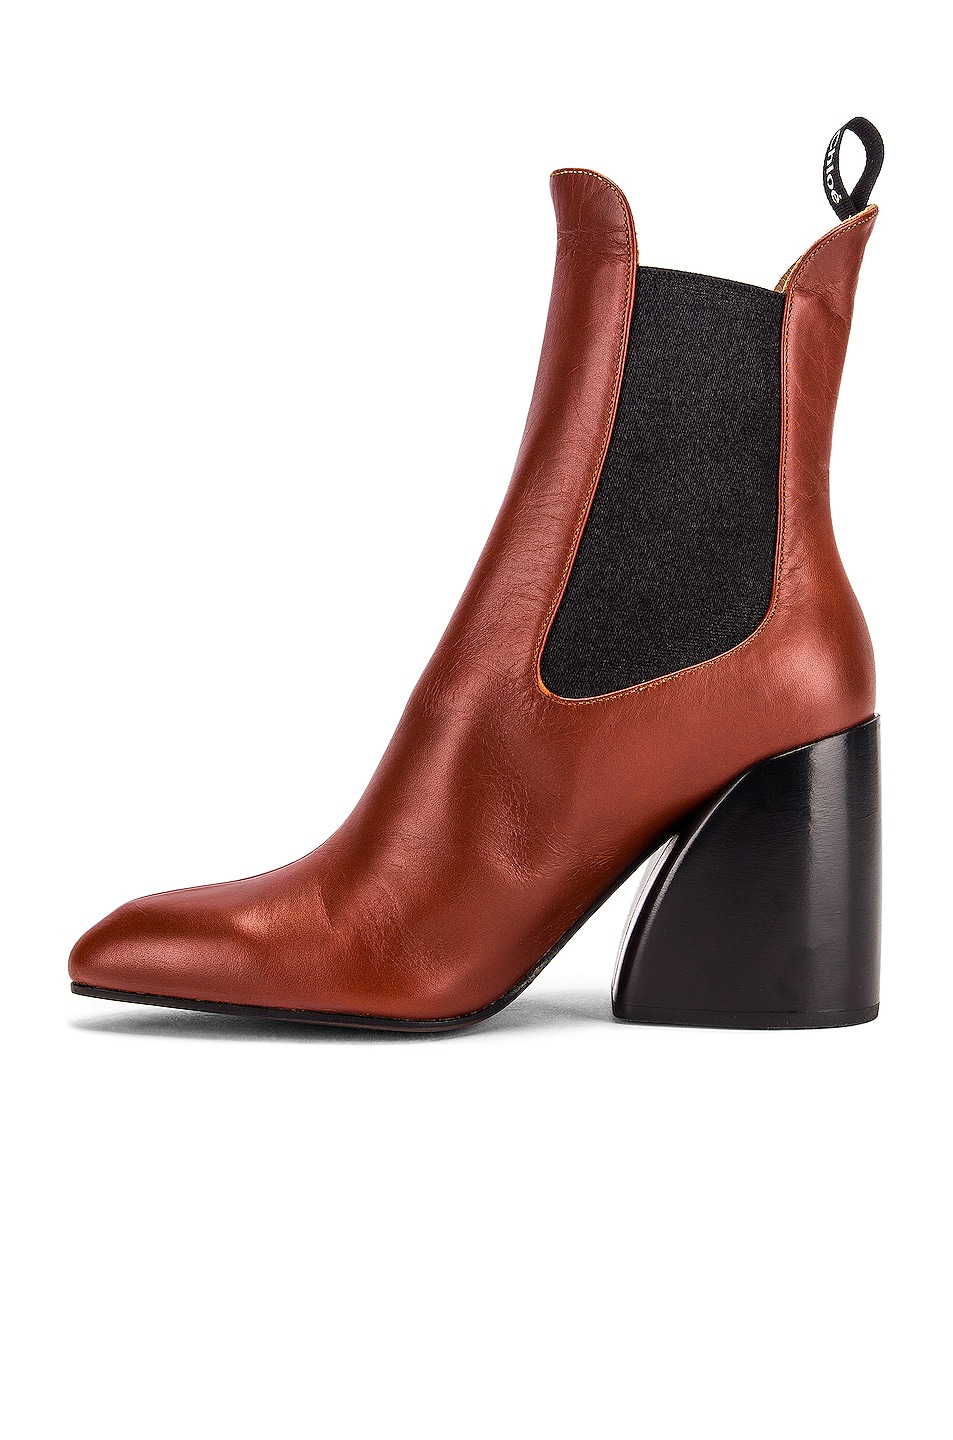 Image 5 of Chloe Leather Ankle Booties in Brown